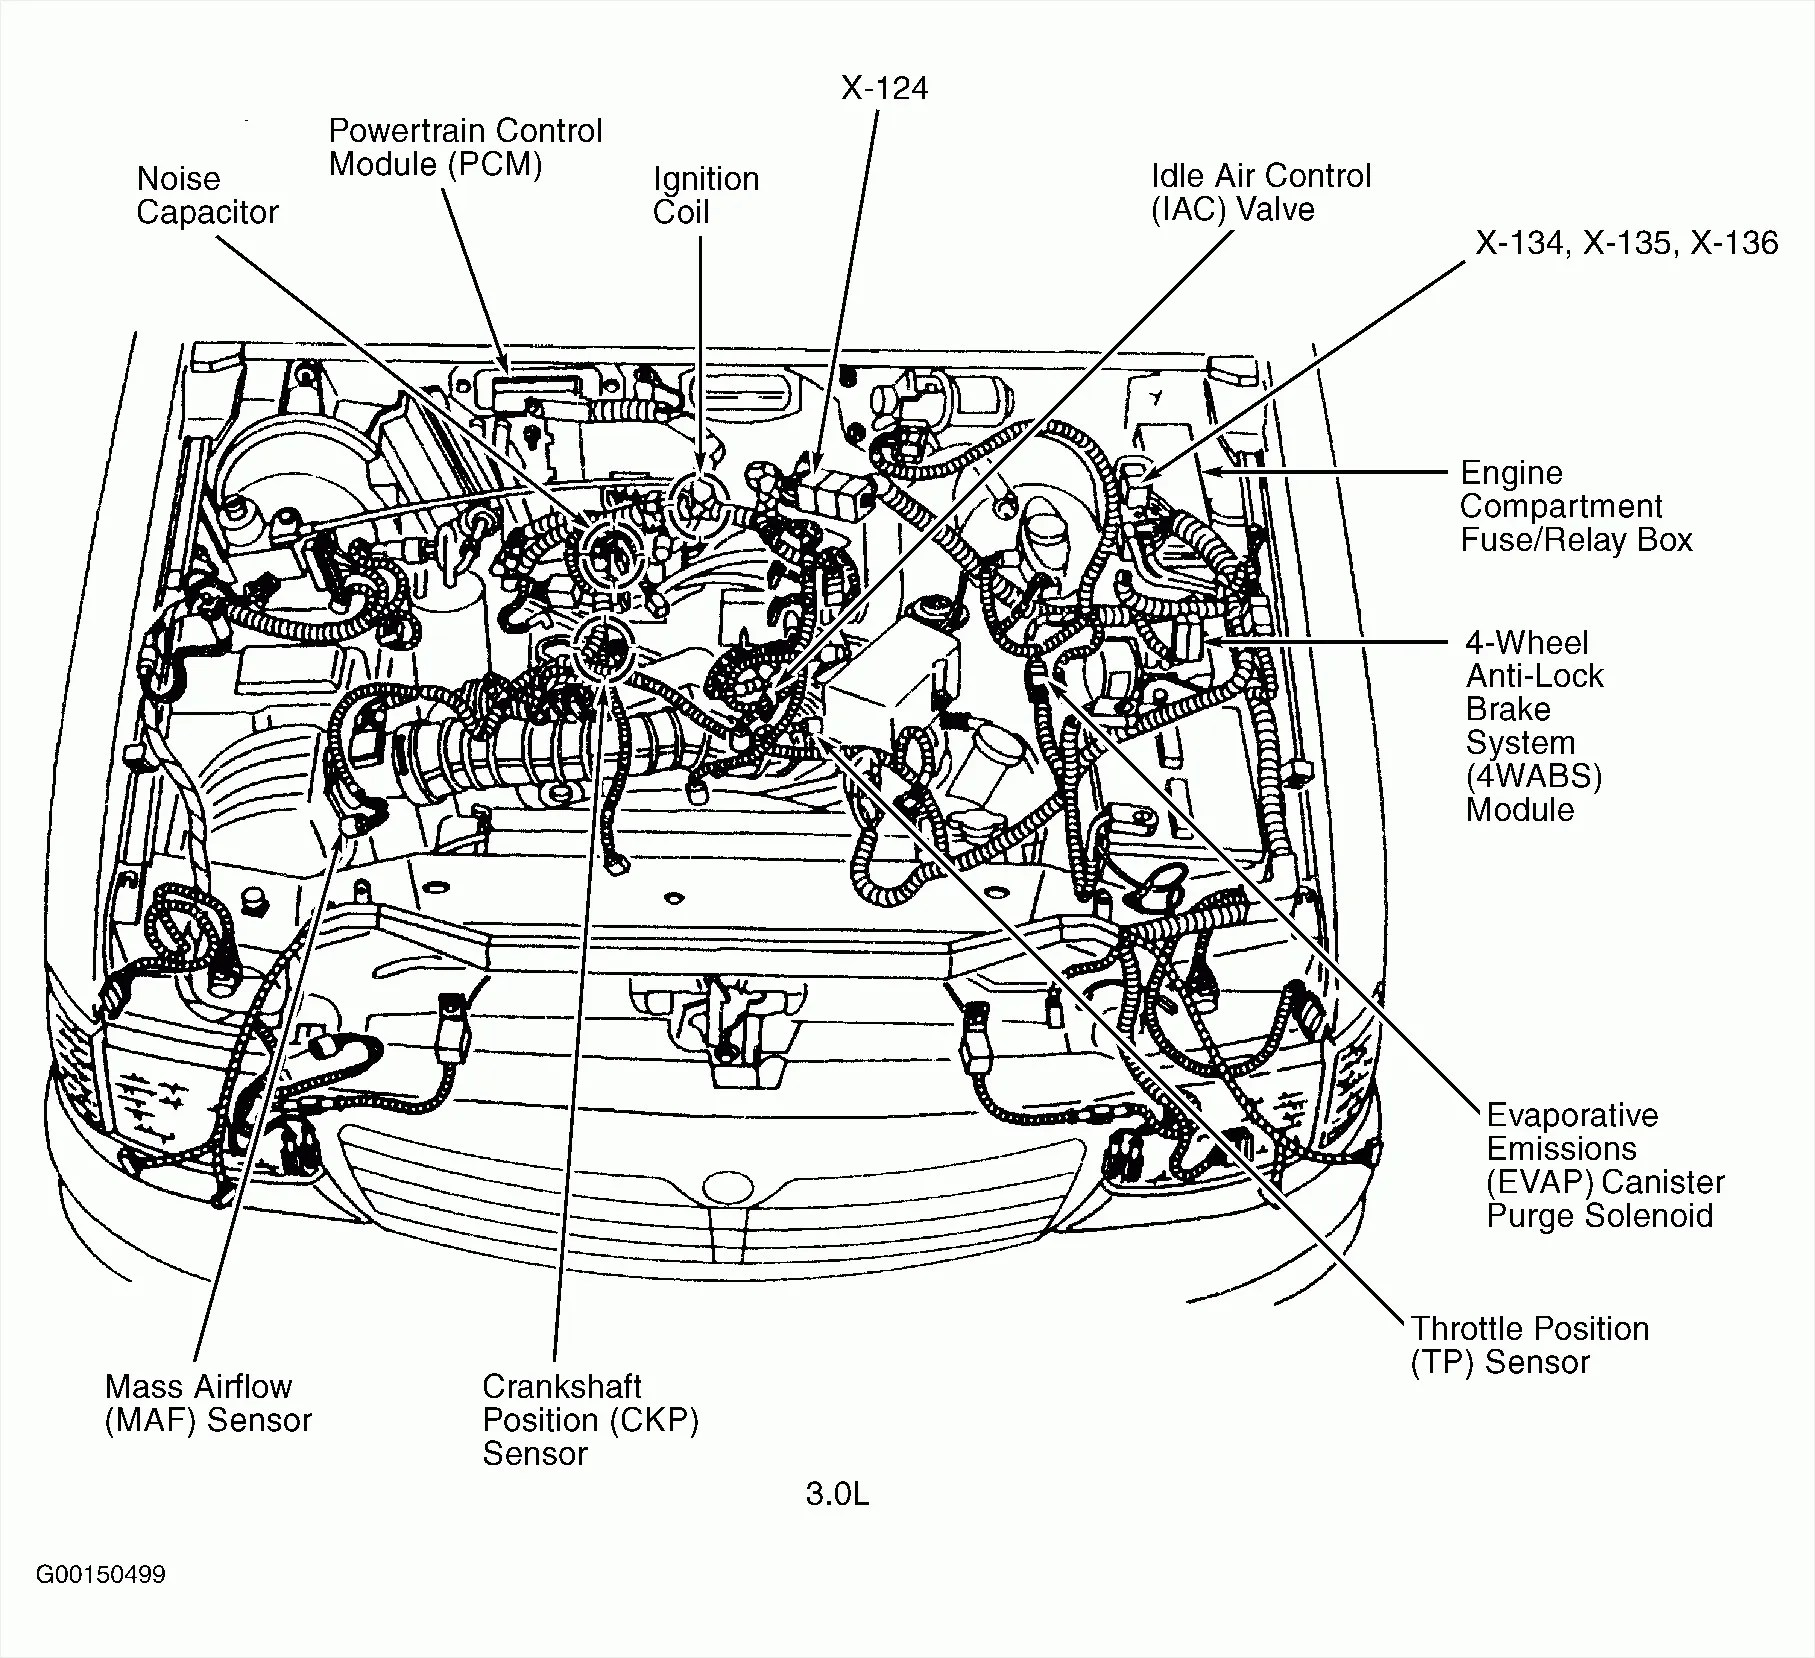 hight resolution of toyota 3 0 v6 engine wiring diagram toyota 3 0 v6 engine wiring diagram best site